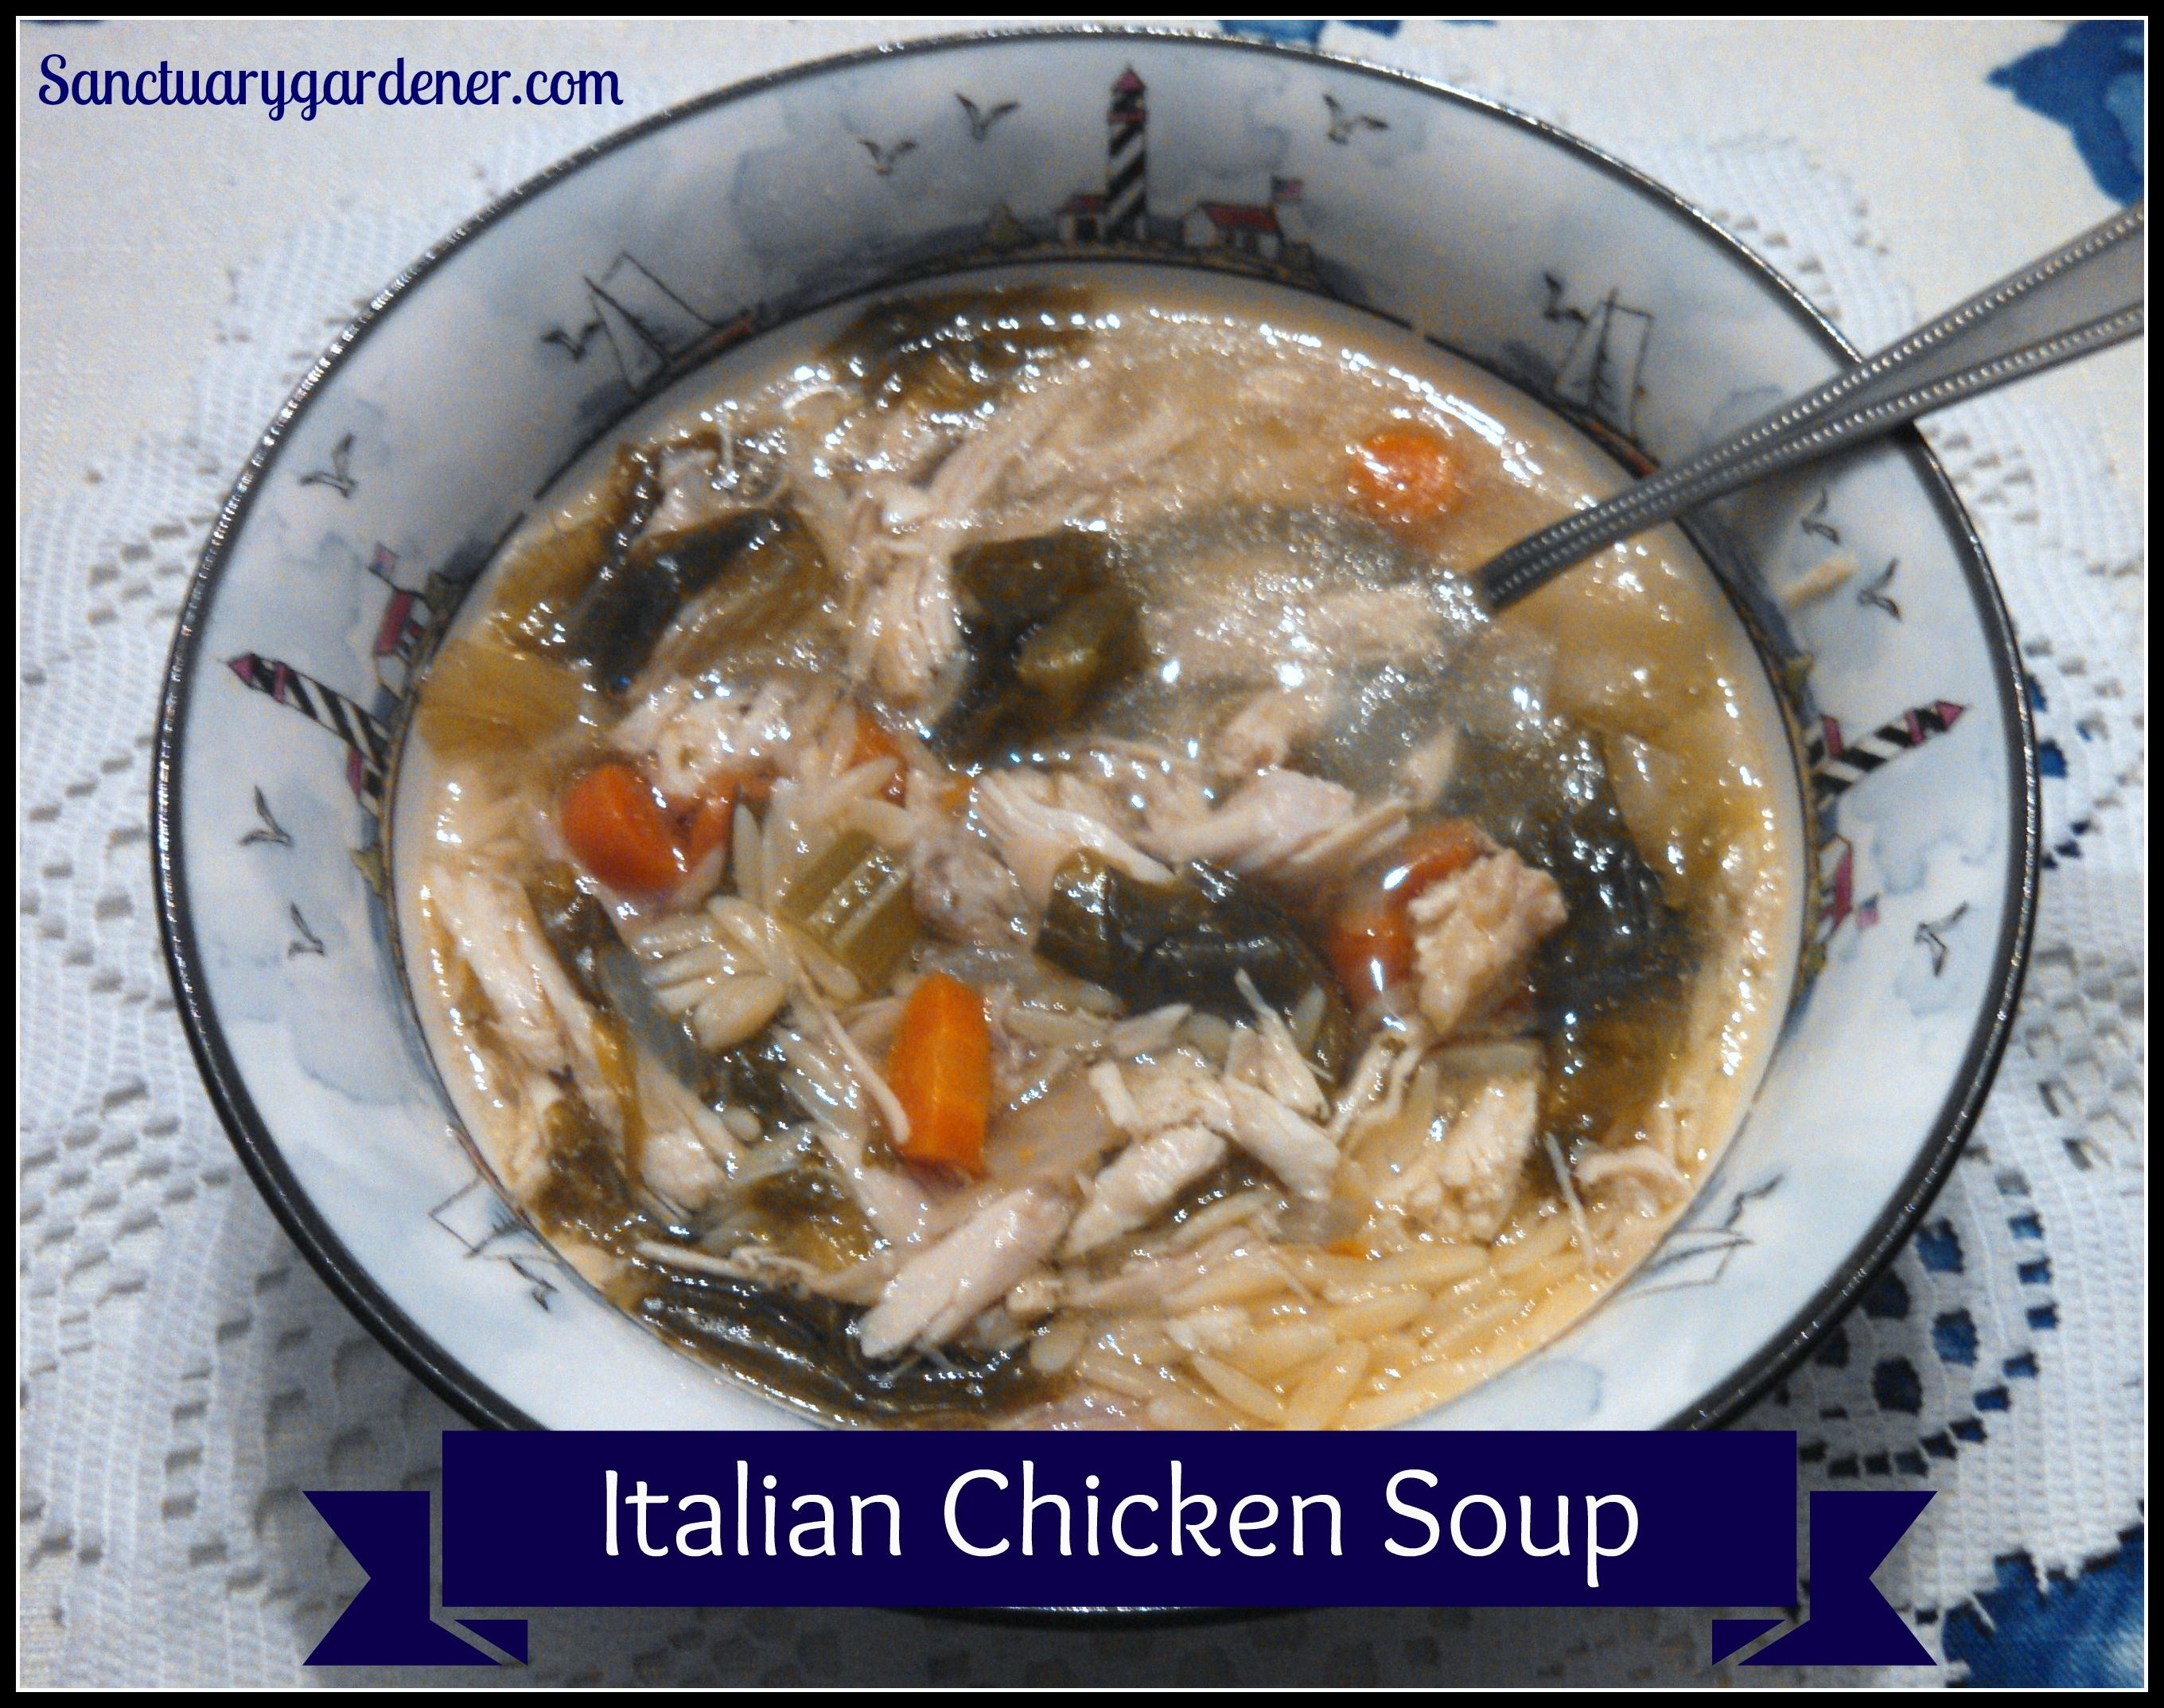 Italian Chicken Soup | Sanctuary Gardener